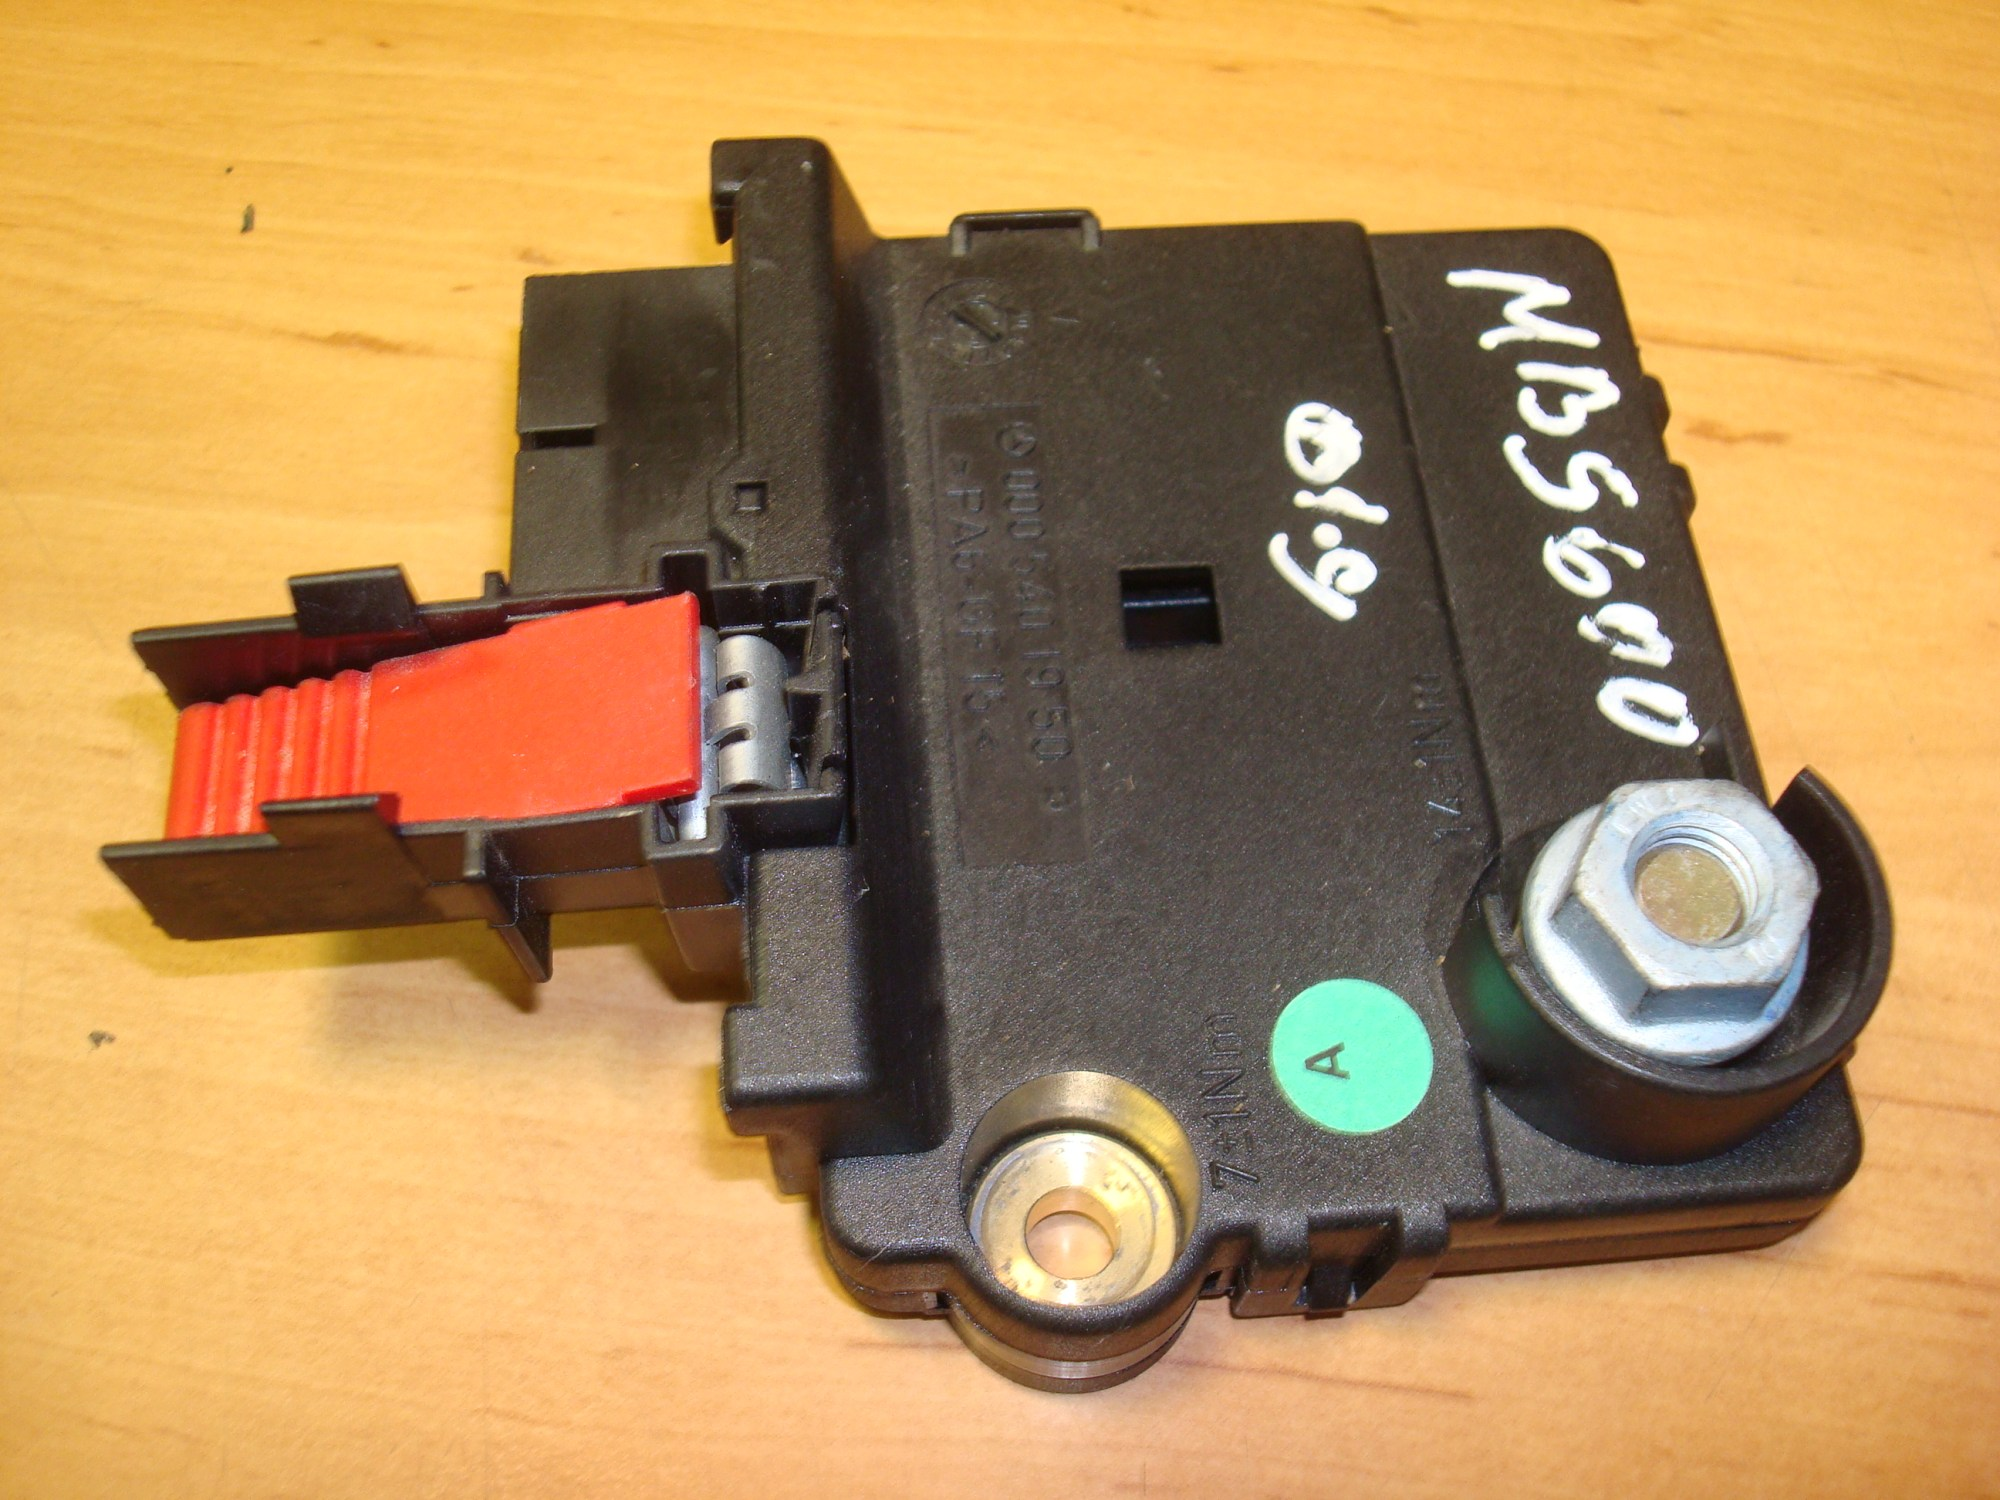 hight resolution of mercedes s class w220 trunk junction fuse box article 0005401950 000 540 19 50